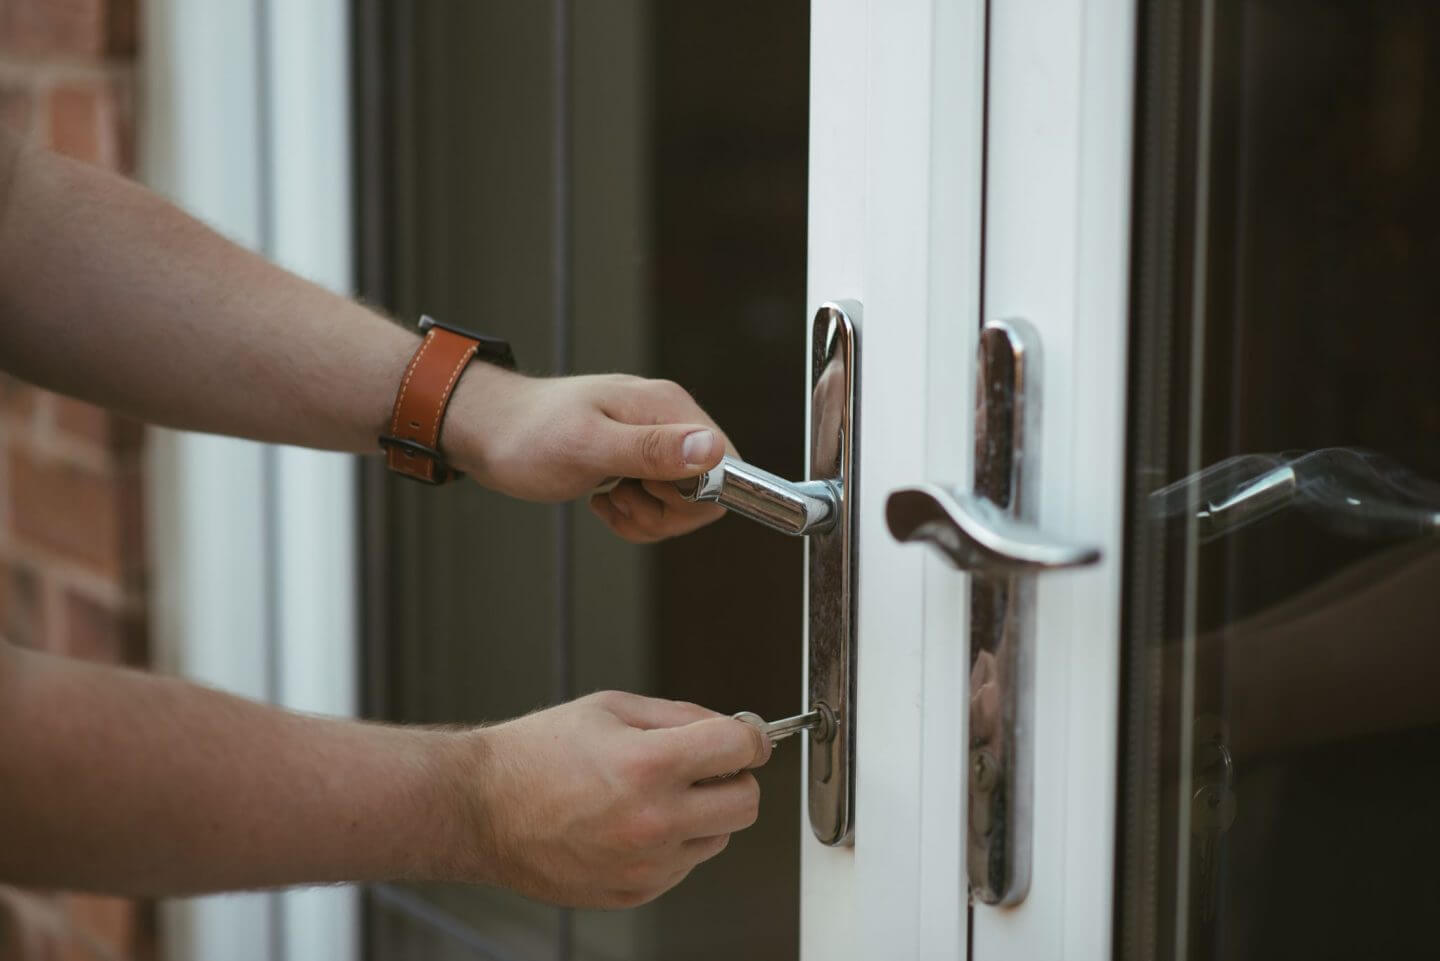 Protect your home when you're away: man locking back french doors with key